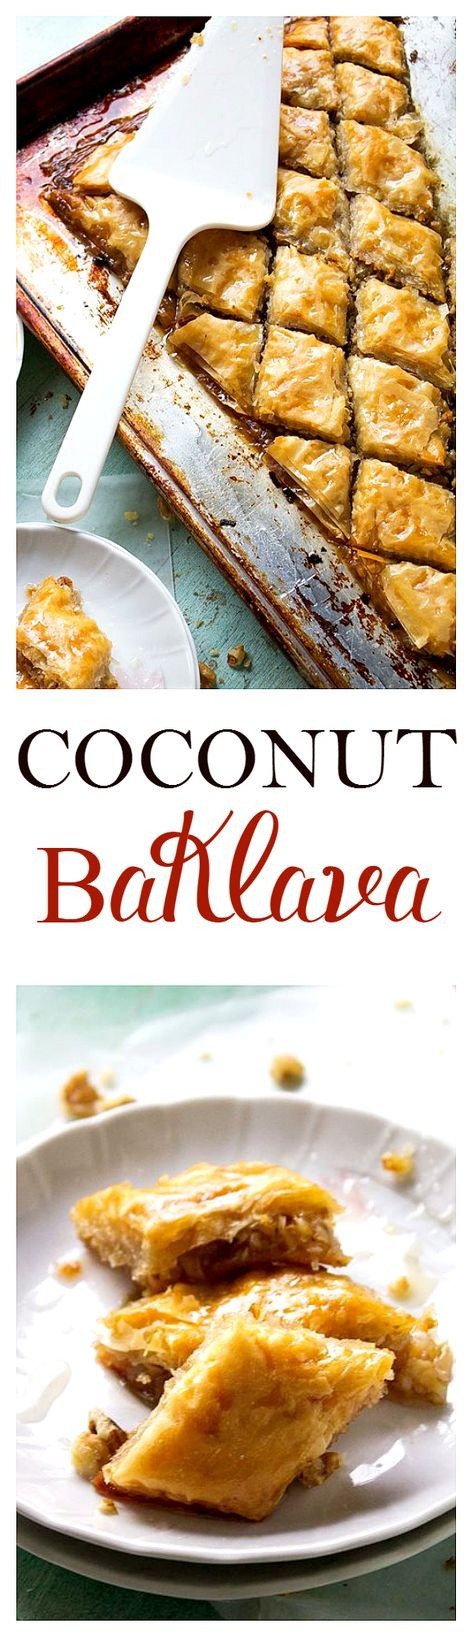 Coconut Baklava - Layers of flaky, buttery phyllo sheets filled with a deliciously moist combination of shredded coconut and walnuts. Get the recipe on http://diethood.com